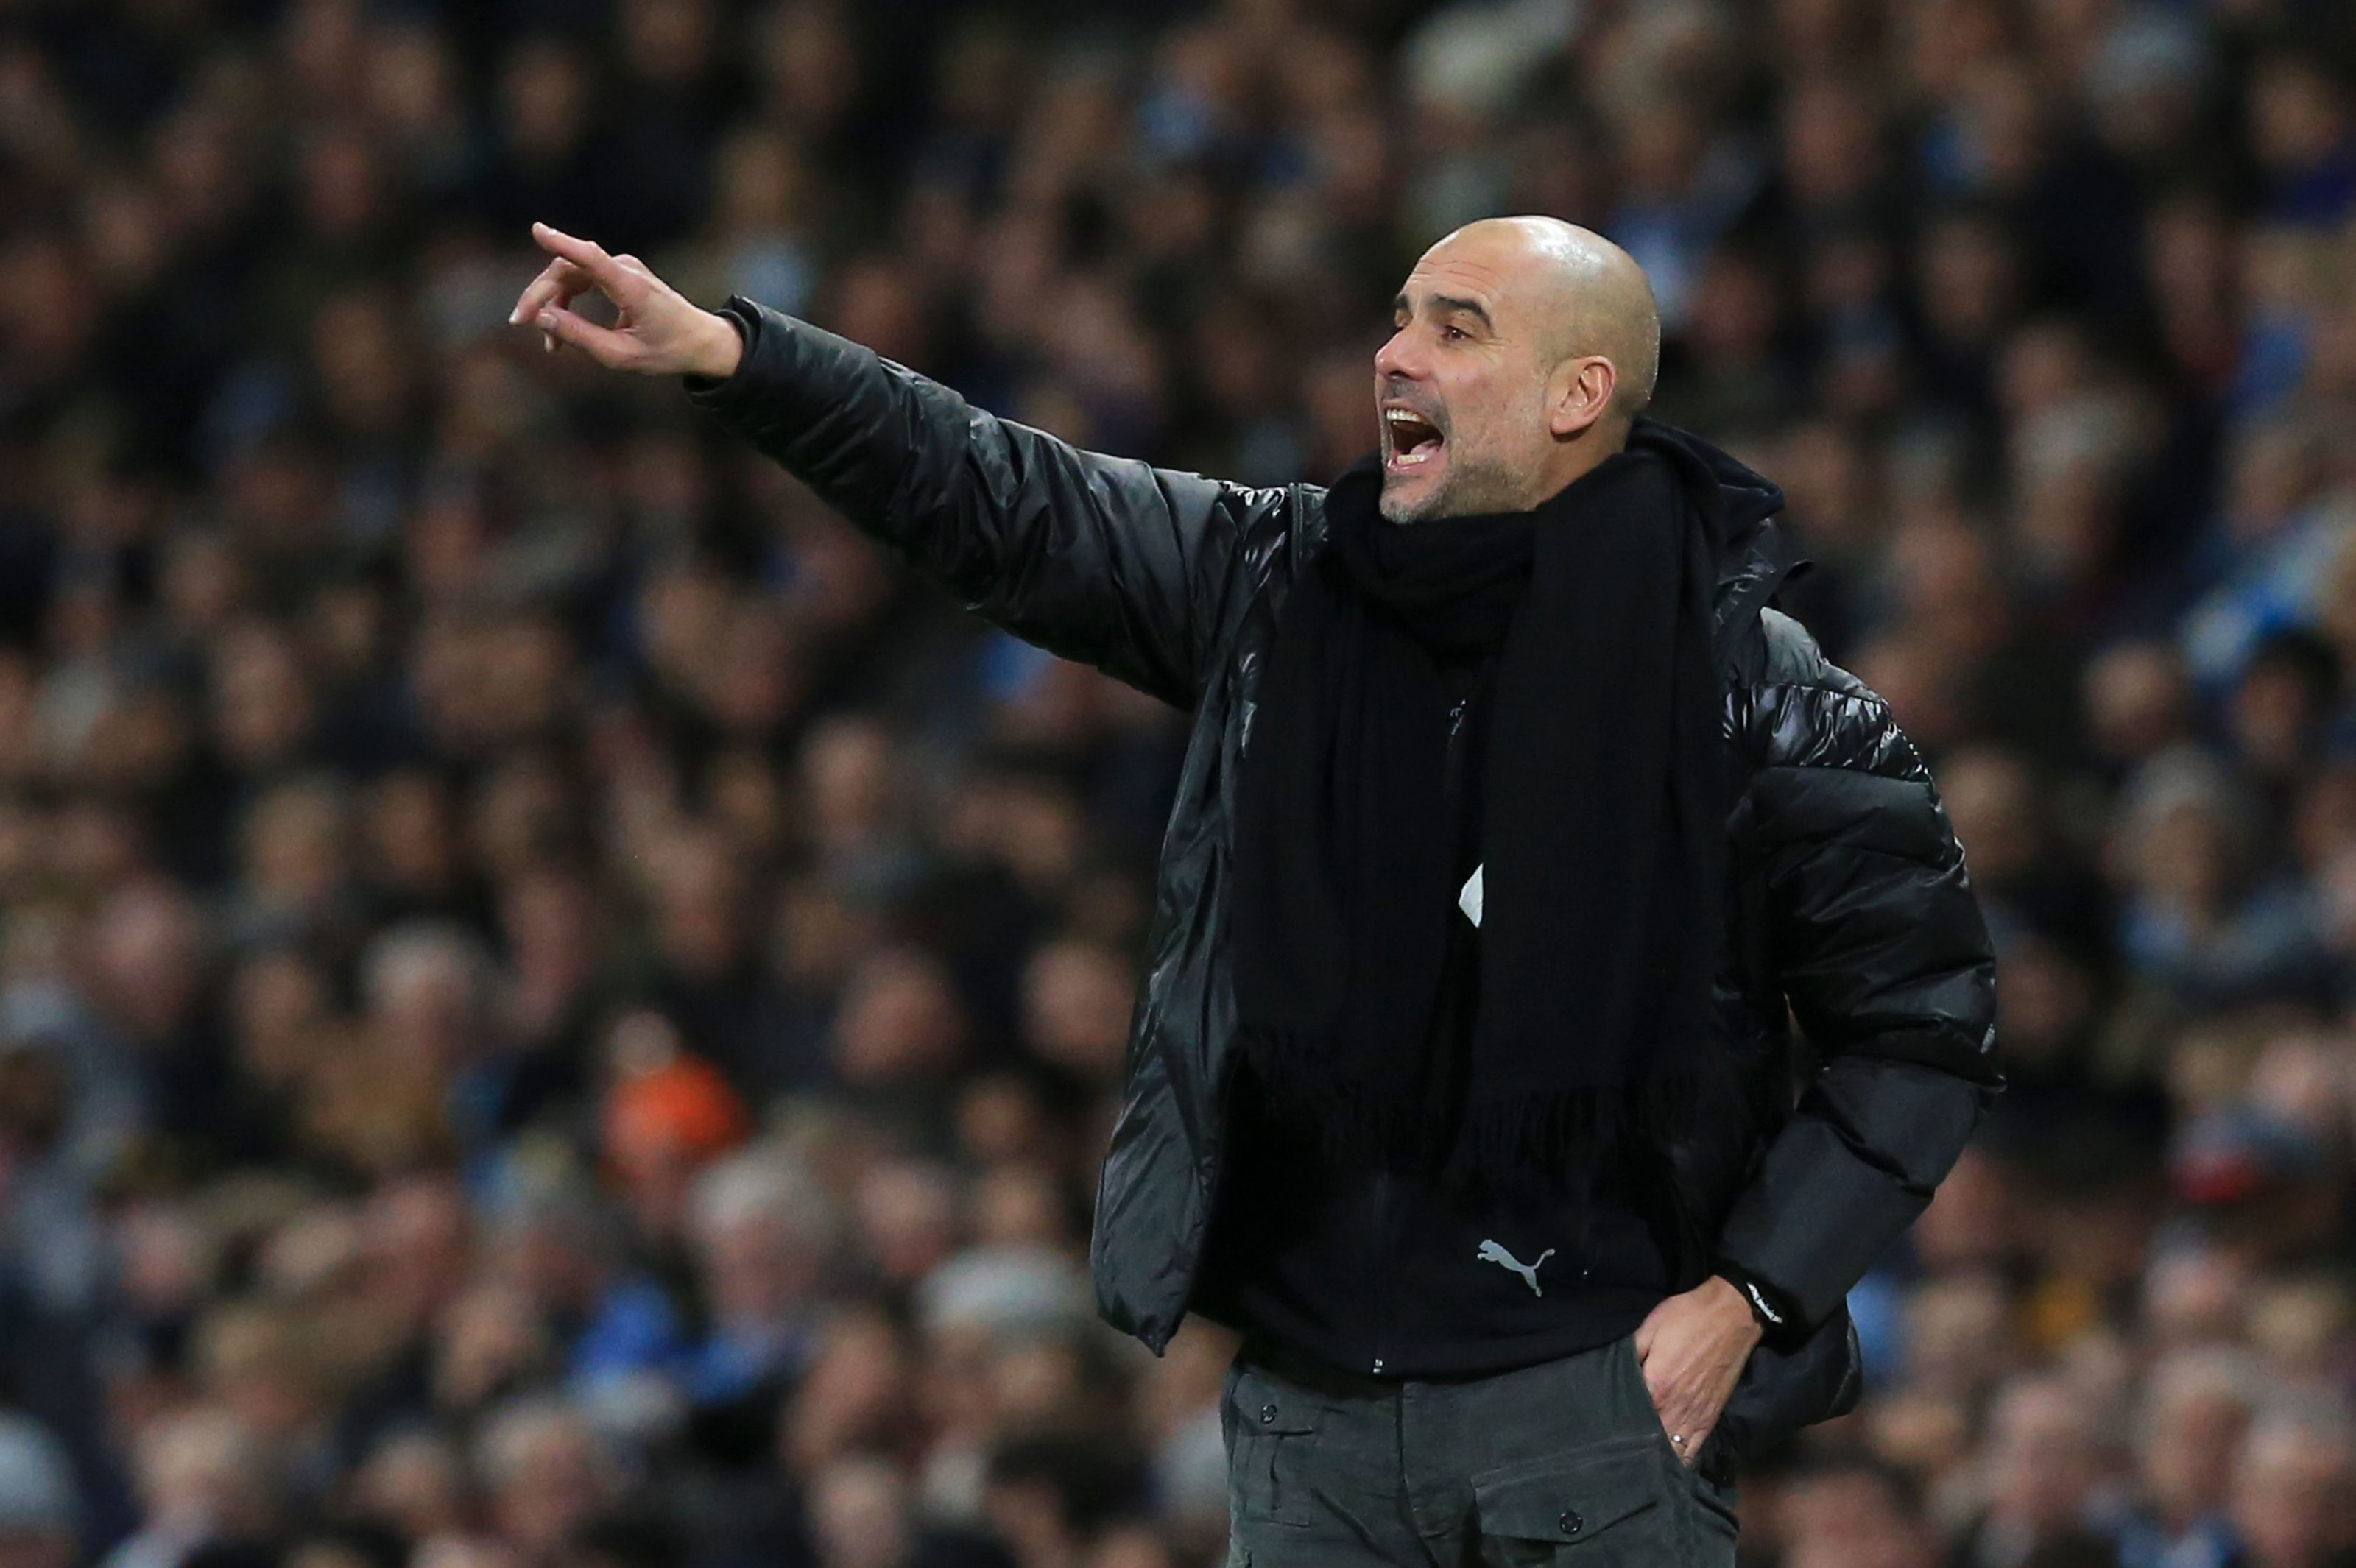 Guardiola wants Barcelona star man to solve his problems at Man City